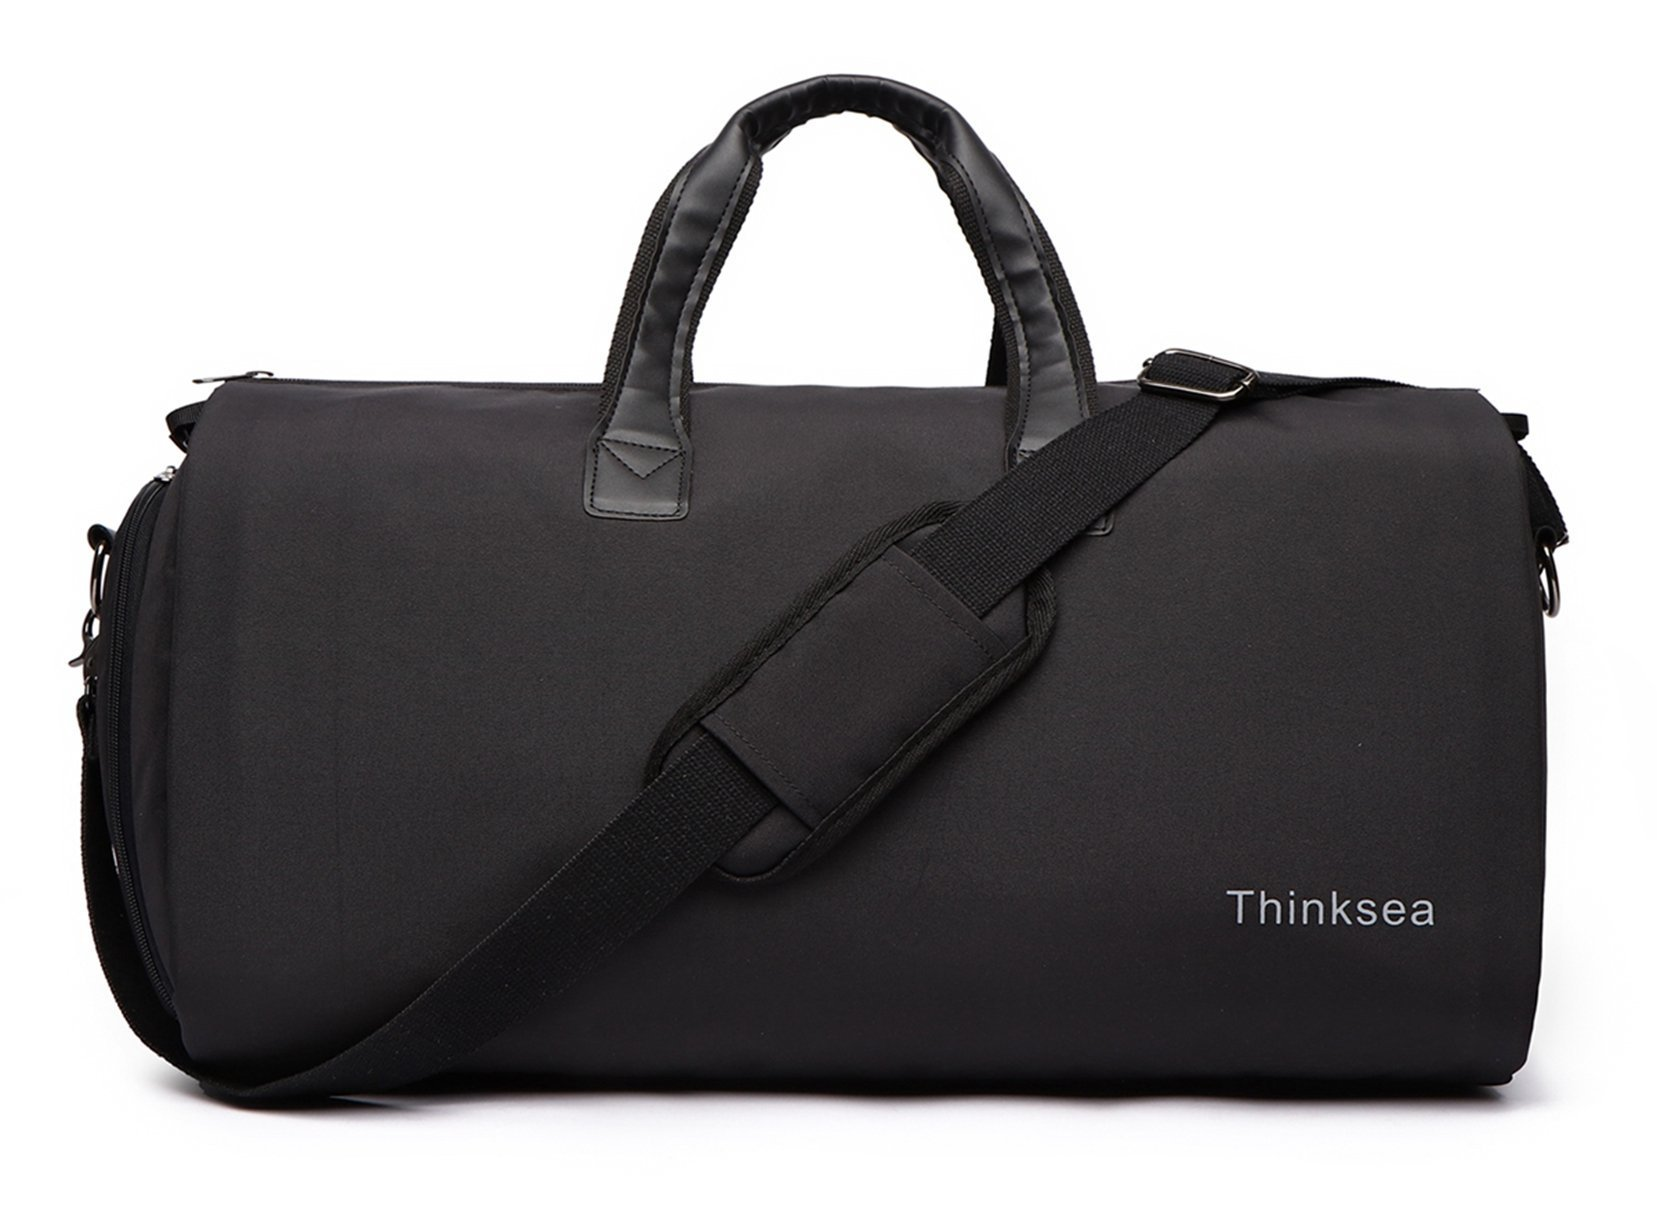 Thinksea Foldable Garment Bag with Weekender Duffle Bag Carry on for Men Women - 2 in 1 Suitcase Suit Travel Bags